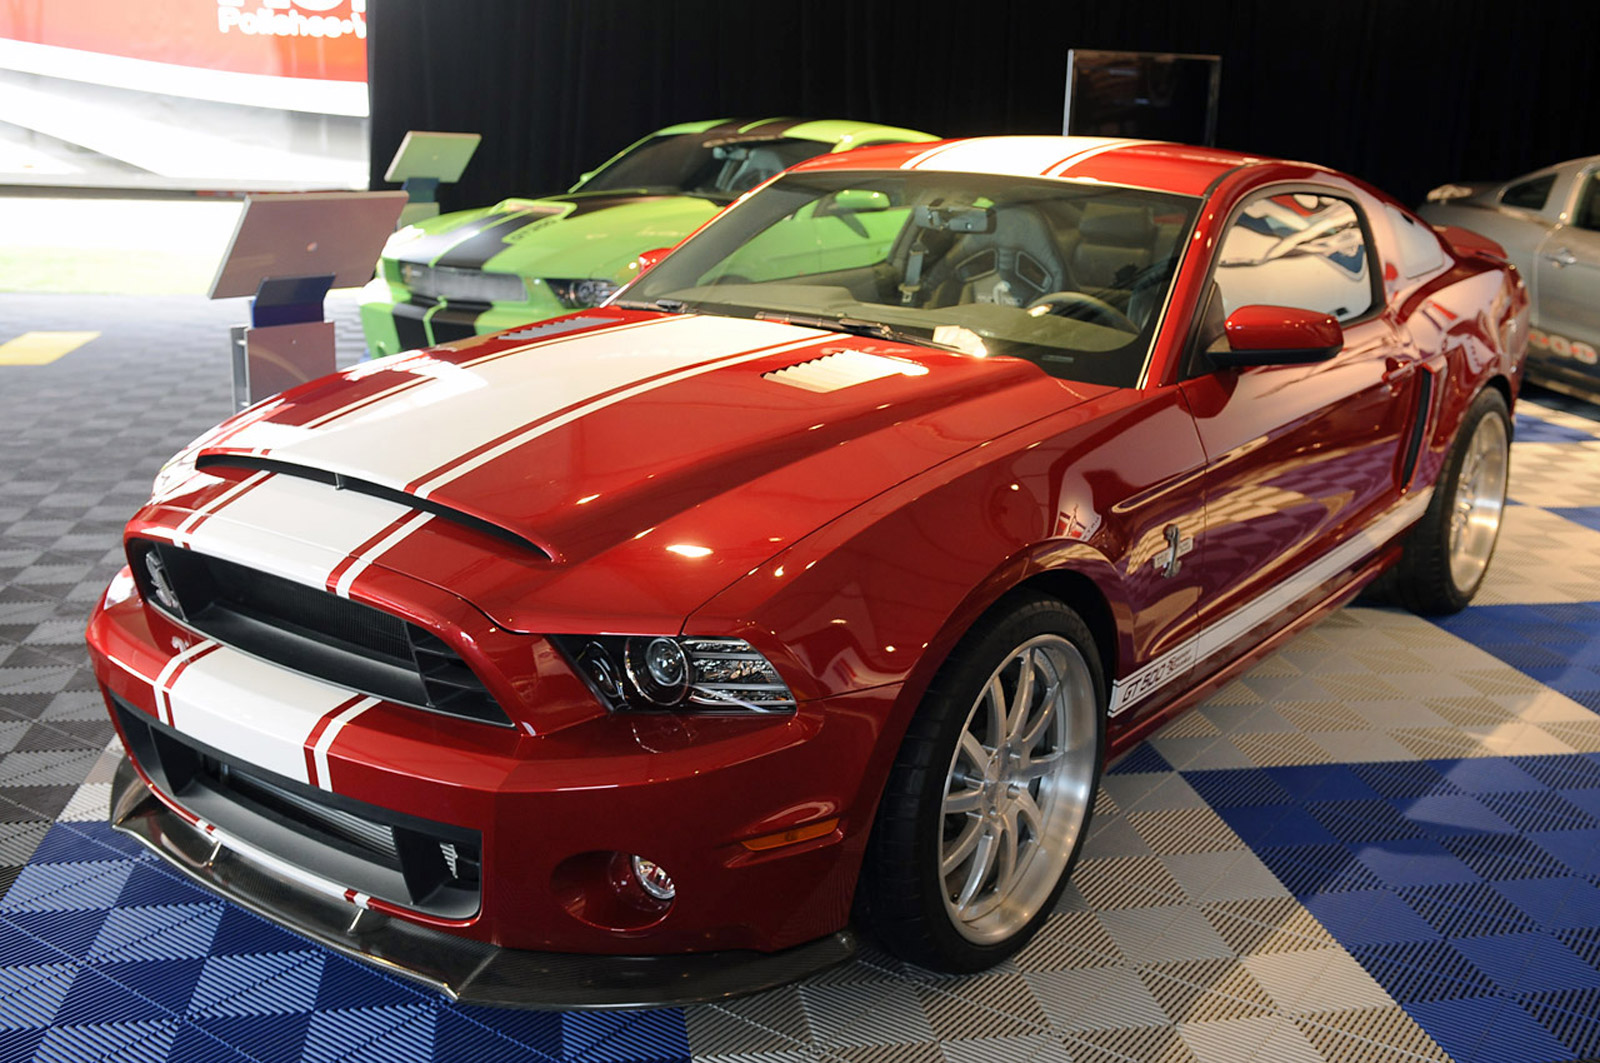 2013 ford mustang shelby gt500 super snake quietly previewed at pebble beach. Black Bedroom Furniture Sets. Home Design Ideas